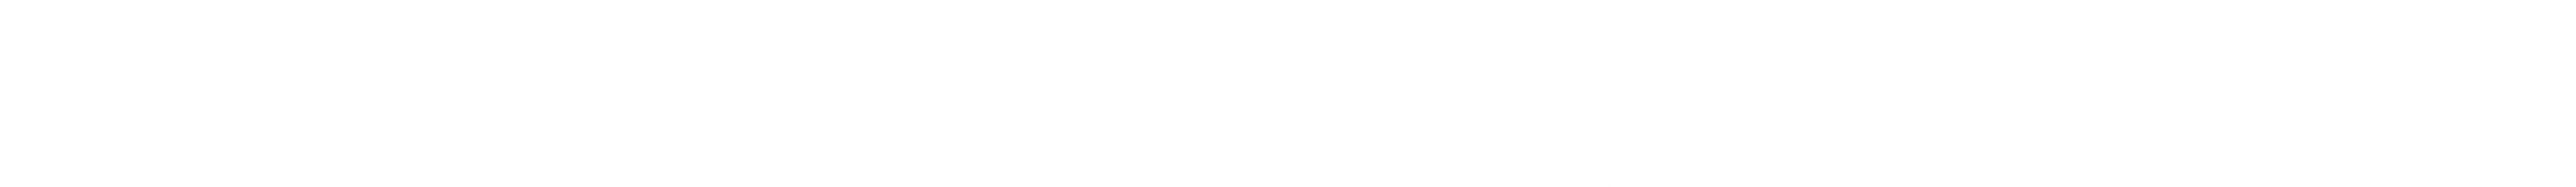 Clouds white_4x.png